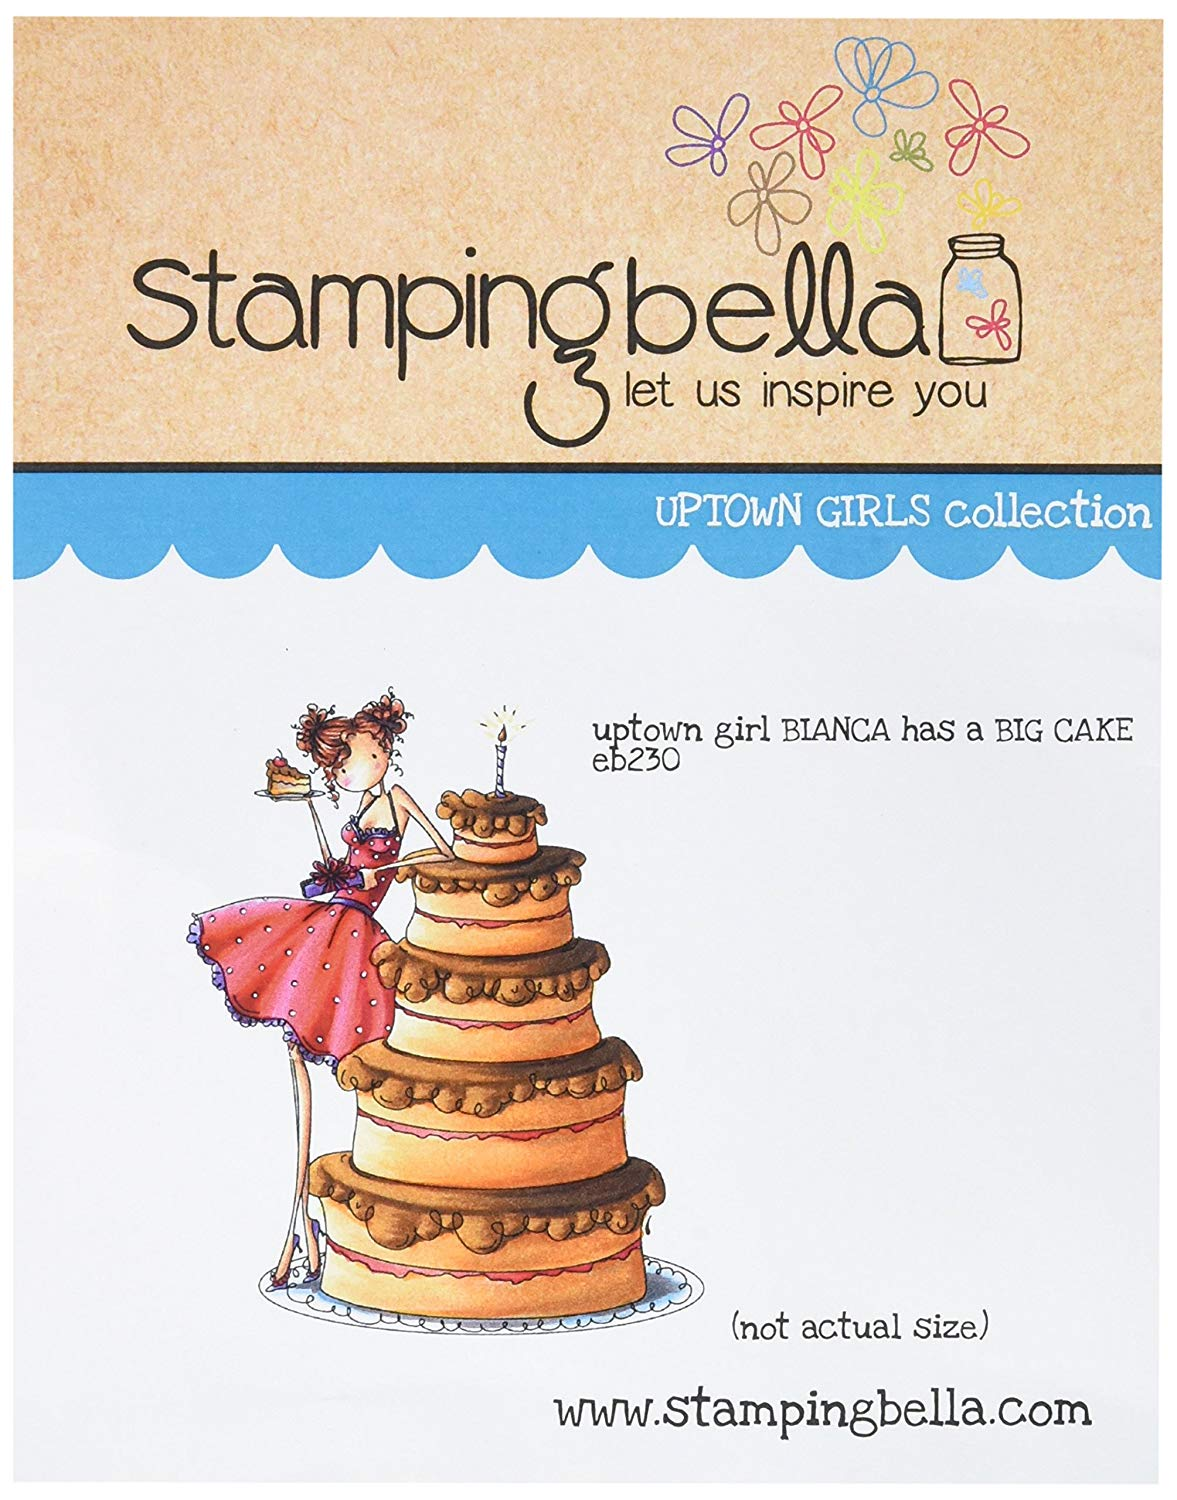 Stamping Bella Cling Rubber Stamp 6.5 x 4.5-inch, Uptown Girl Bianca Loves Her Big Cake, 6.5 x 4.5